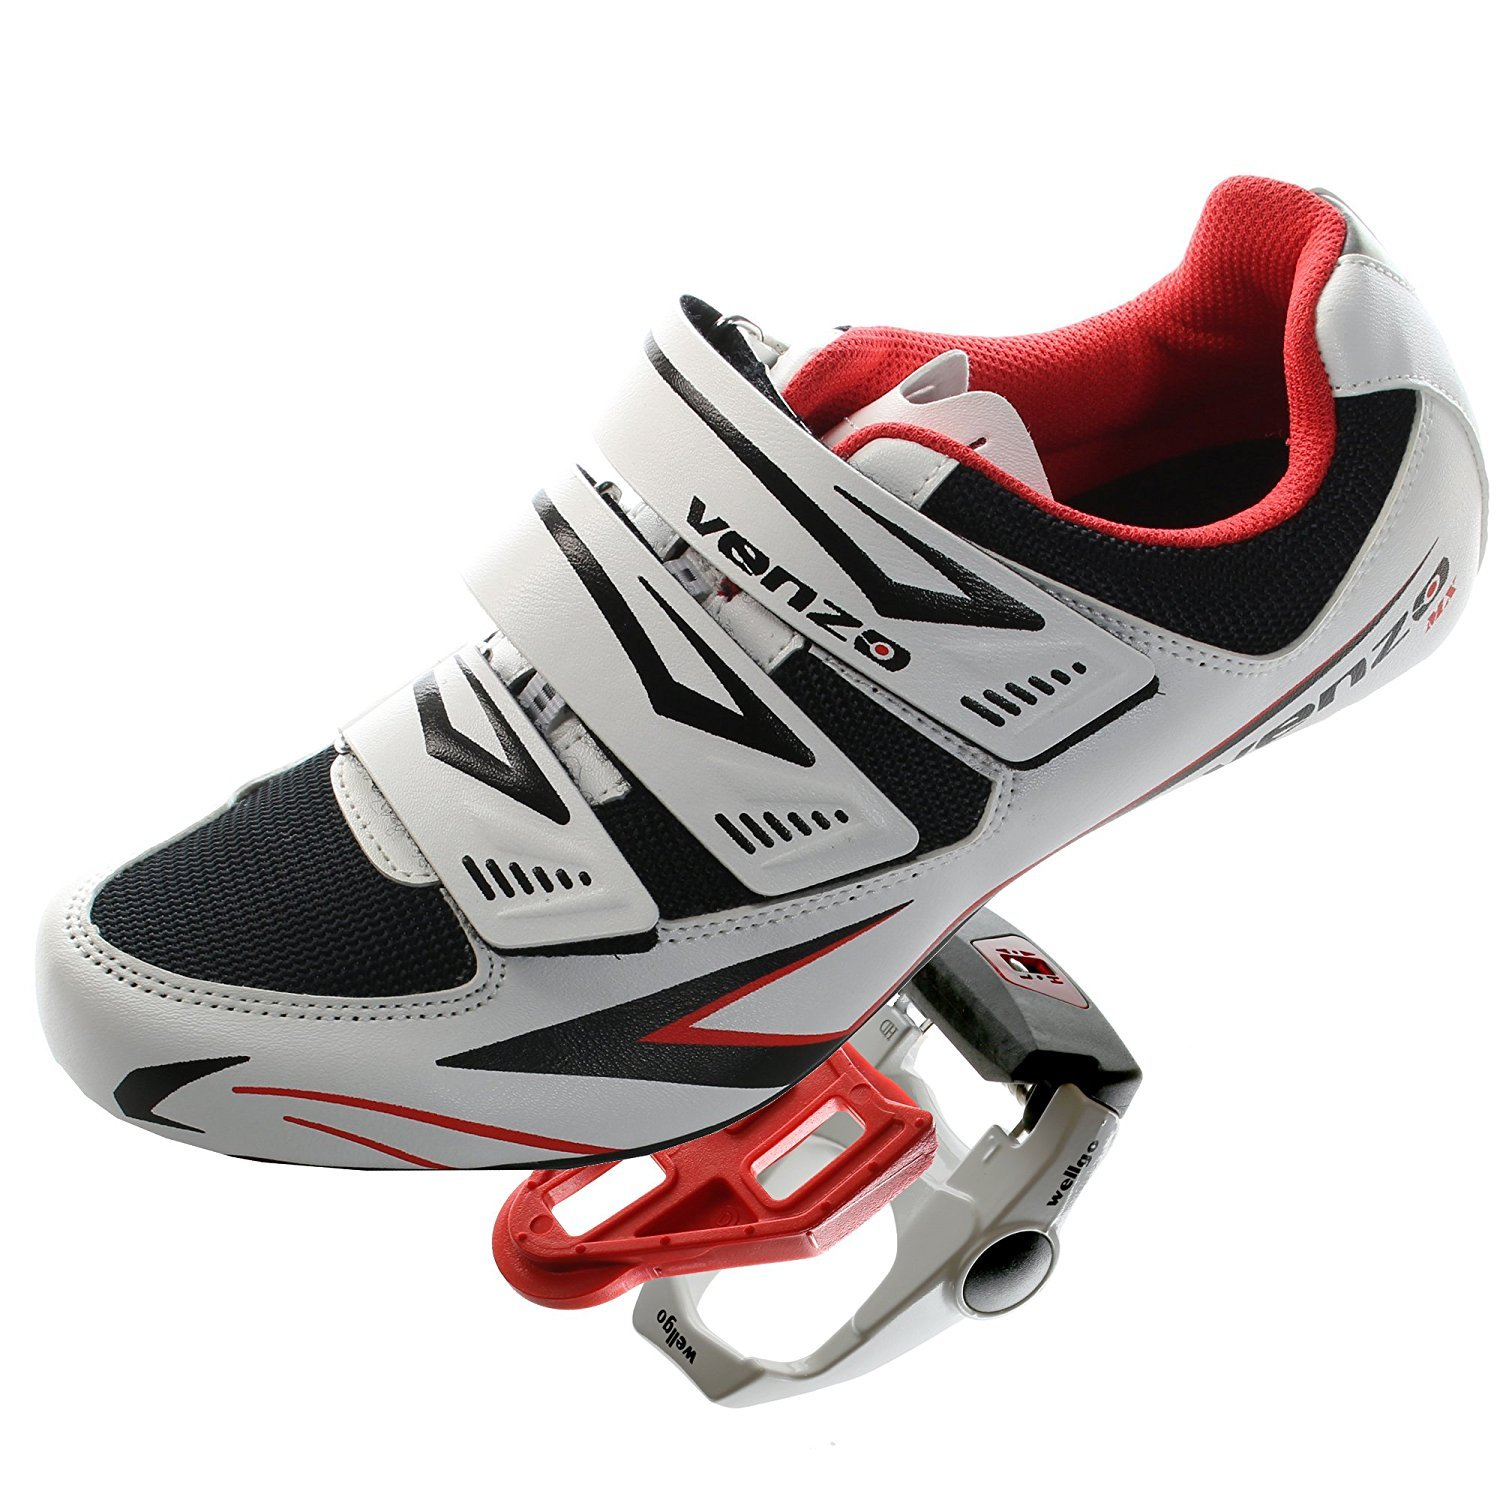 Venzo Road Bike For Shimano SPD SL Look Cycling Bicycle Shoes & Pedals 42.5 by Venzo